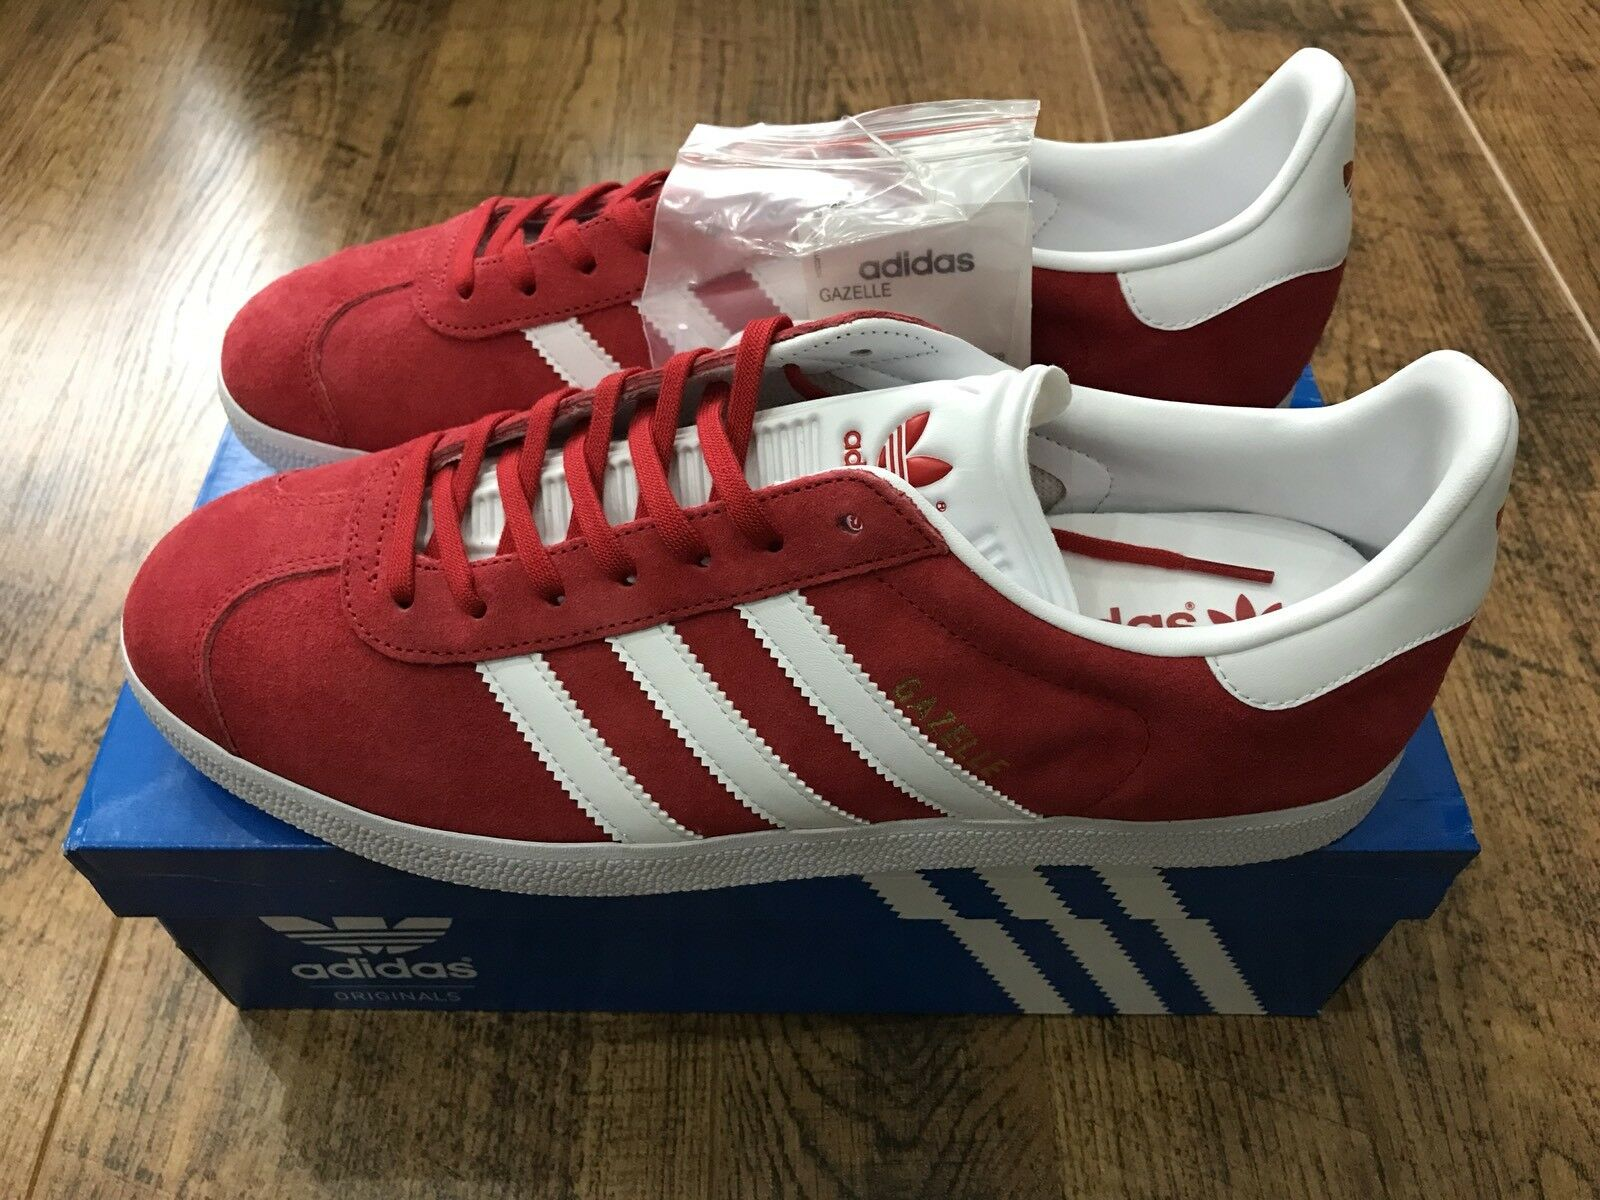 ADIDAS GAZELLE TRAINNERS UK 10.5 rot SUEDE LOW TOP Turnschuhe PLIM SOLE MENS schuhe